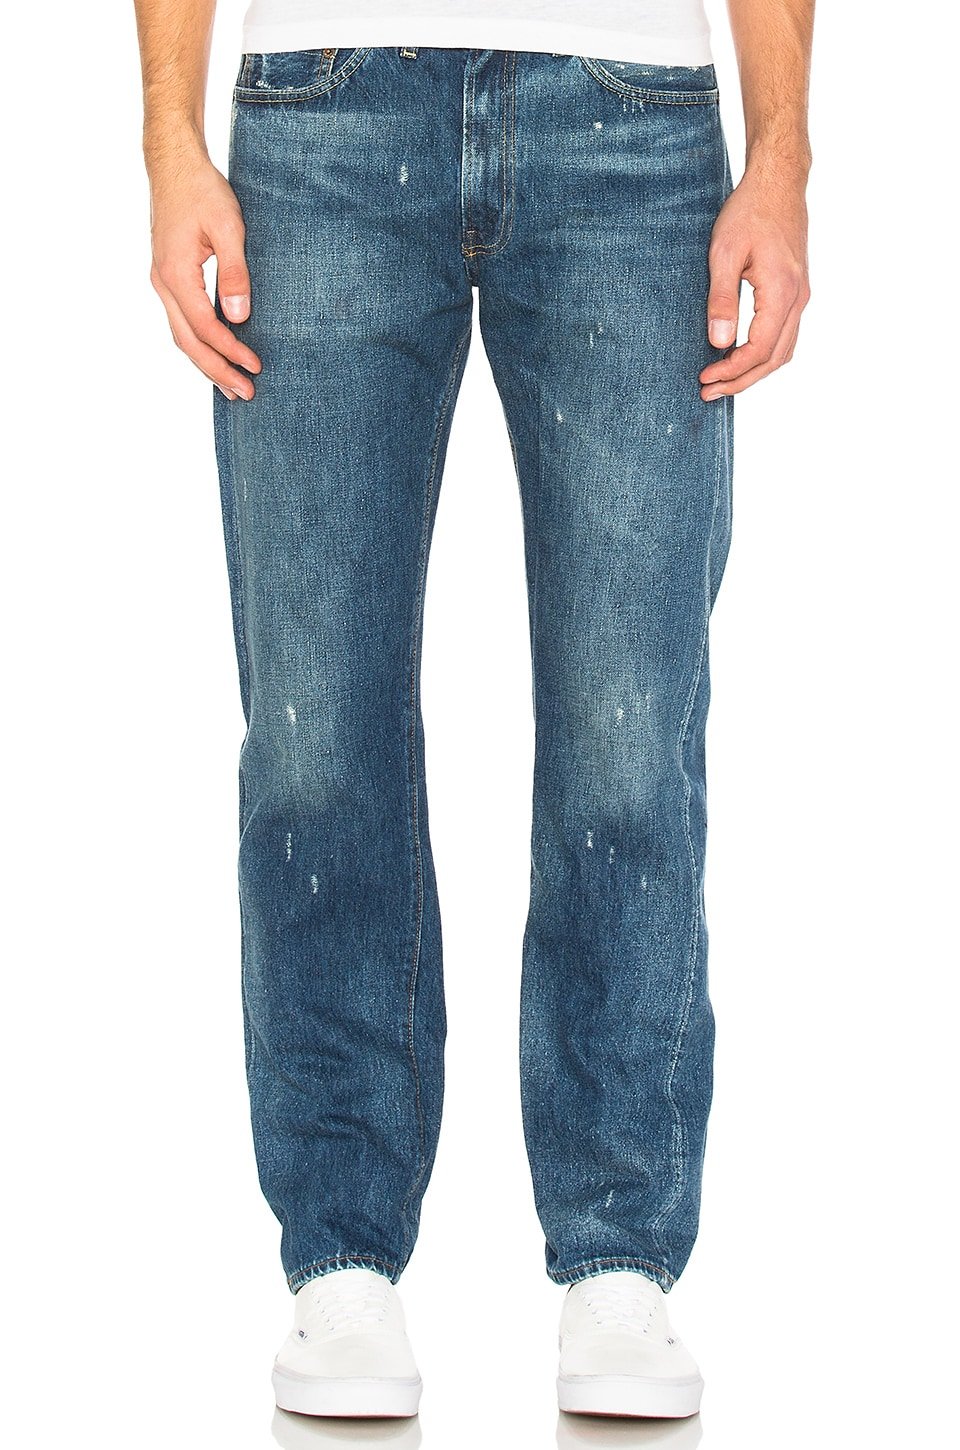 1954 501 Jeans by LEVI'S Vintage Clothing